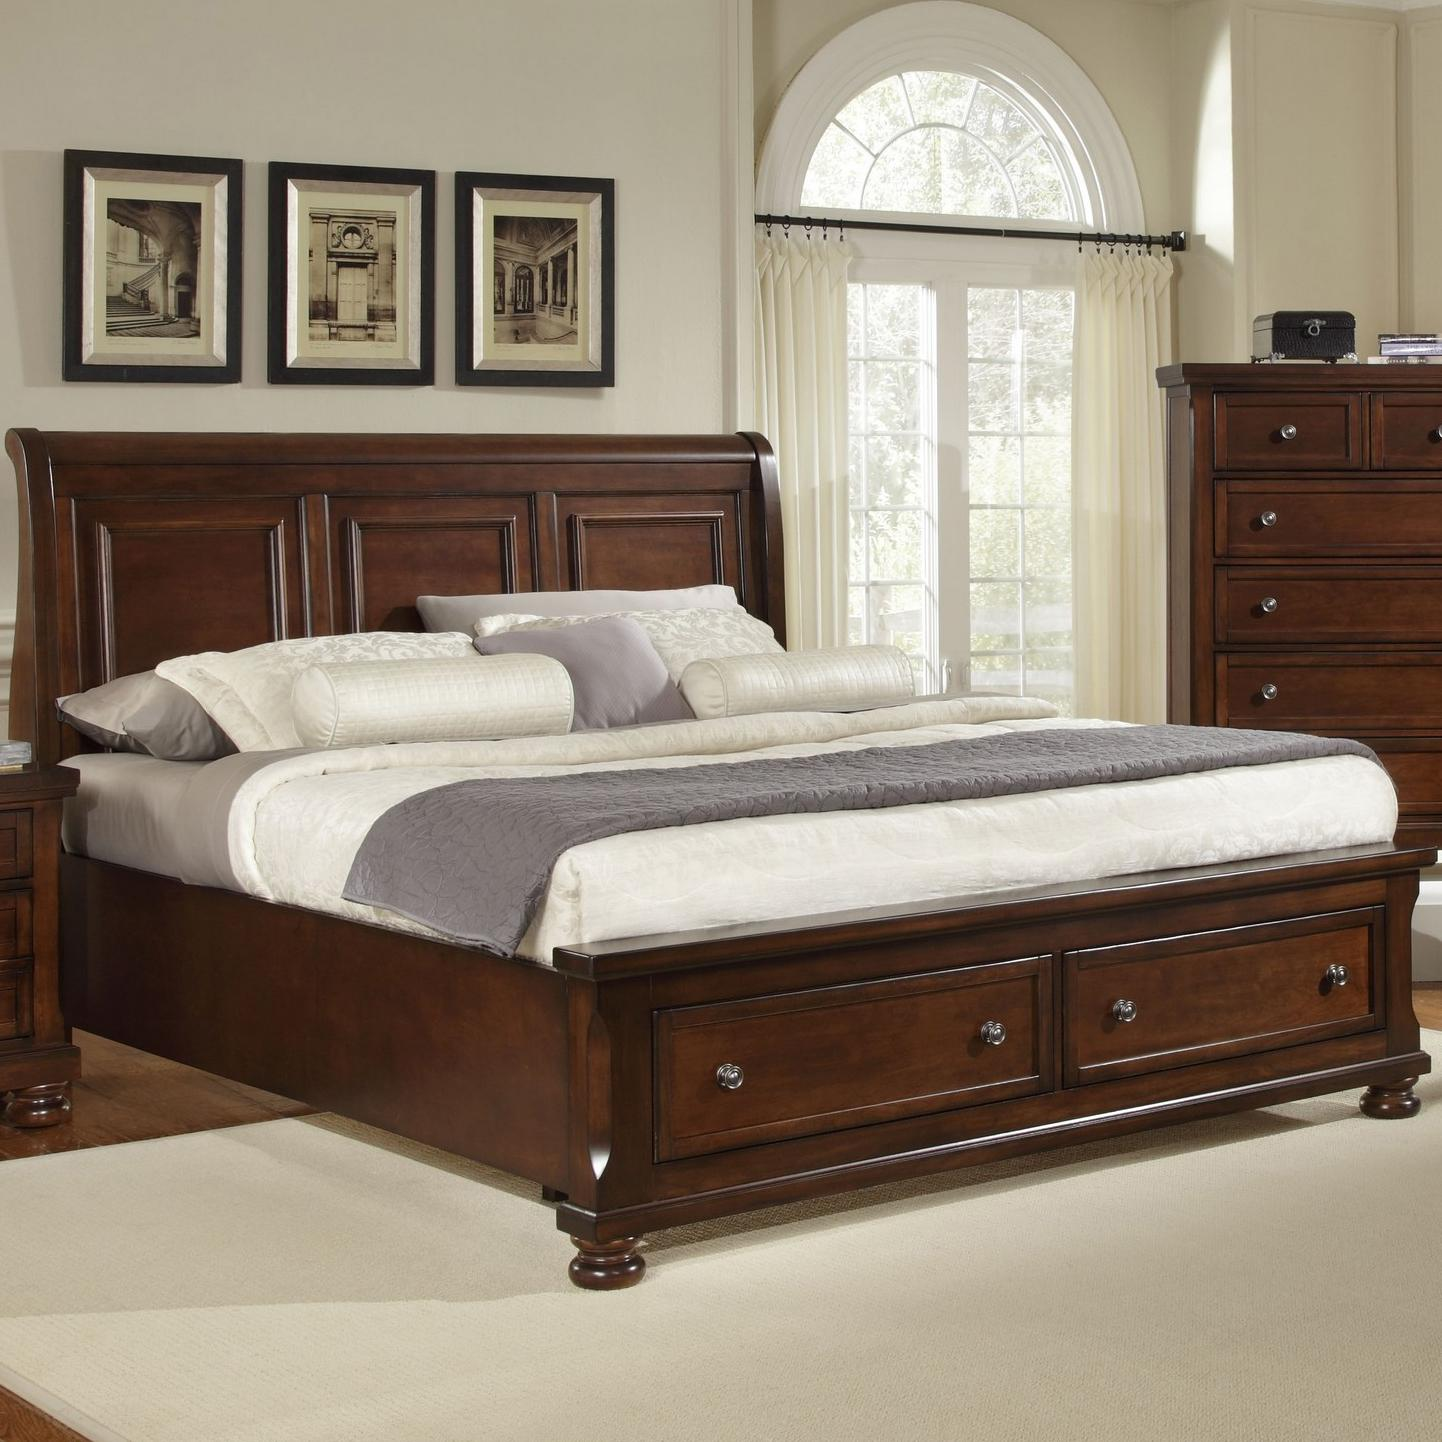 Vaughan Bassett Reflections King Storage Bed With Sleigh Headboard   Item  Number: 530 663